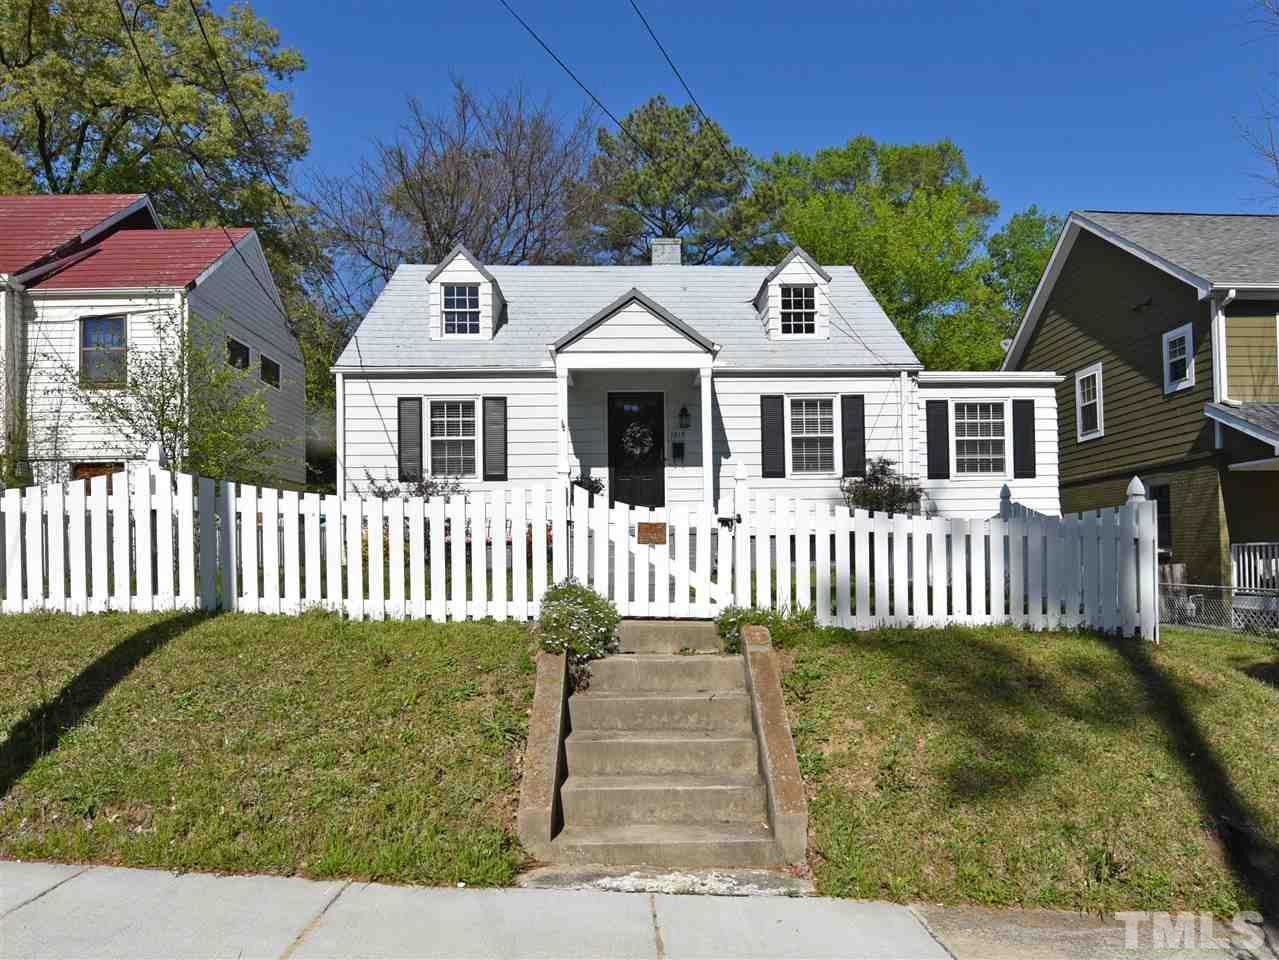 $324,500 - 2Br/2Ba -  for Sale in Mordecai Place, Raleigh